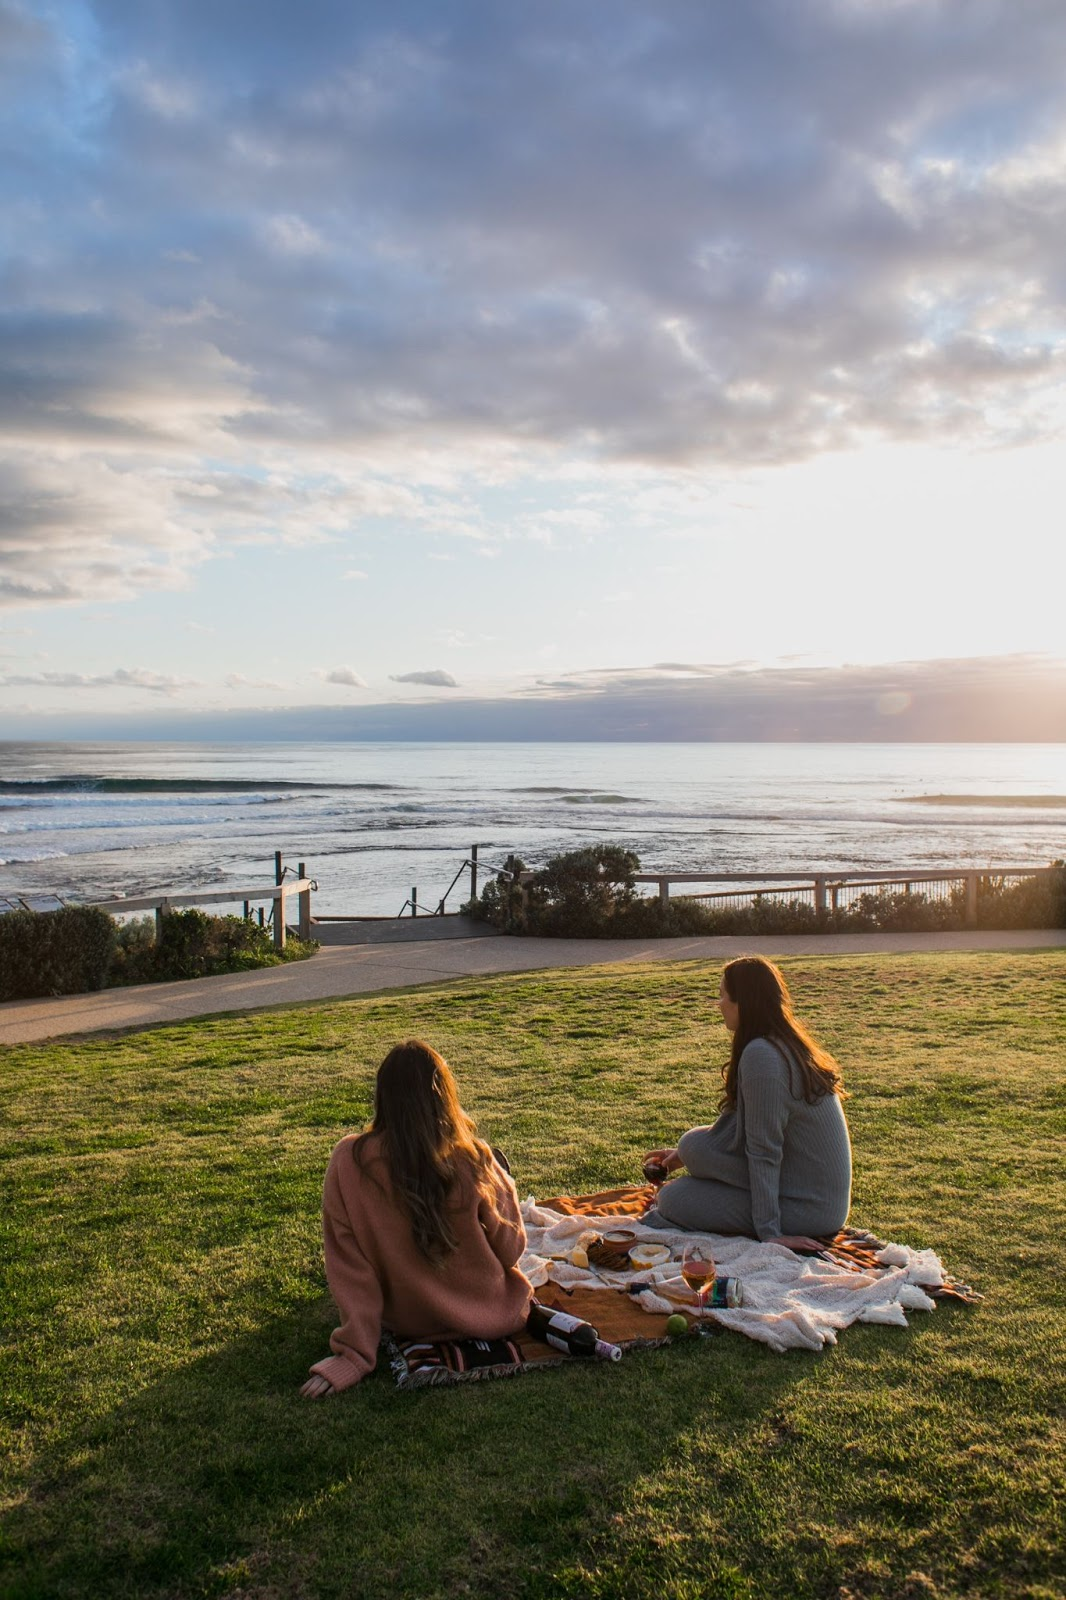 Two girls sitting on a picnic blanket looking out at the lake sunset.